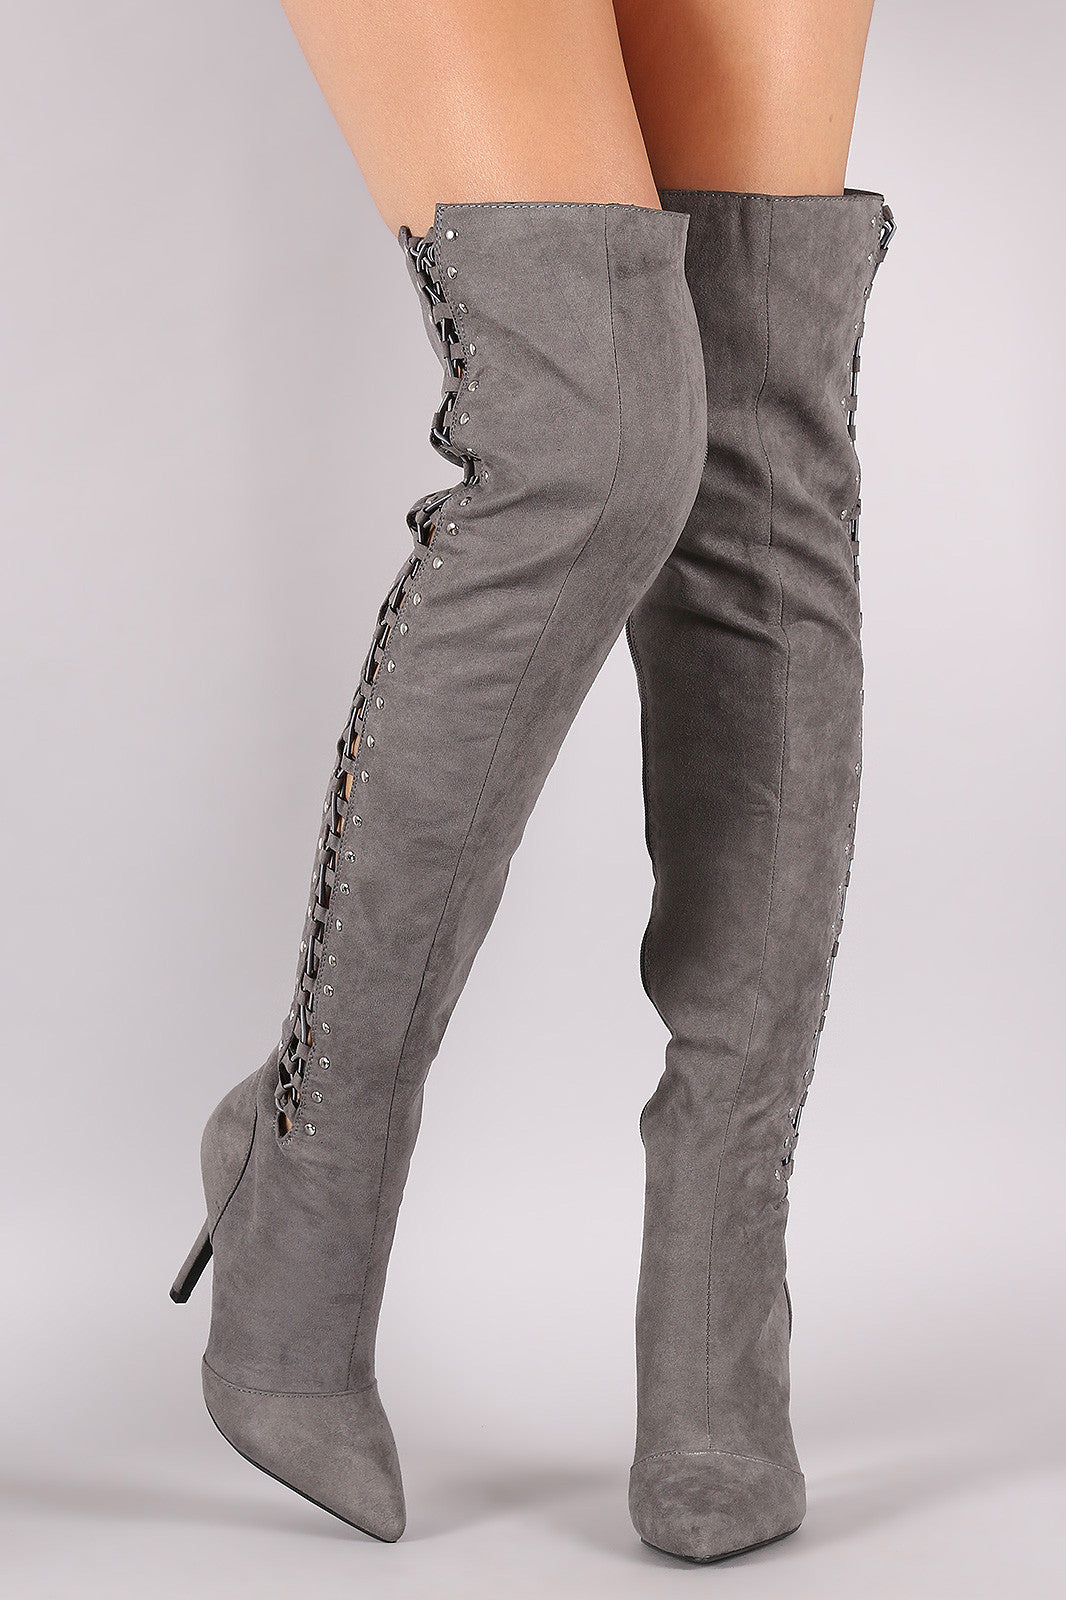 961f5198ea5 Qupid Suede Studded Lace Up Over-The-Knee Stiletto Boots – Kurve ...